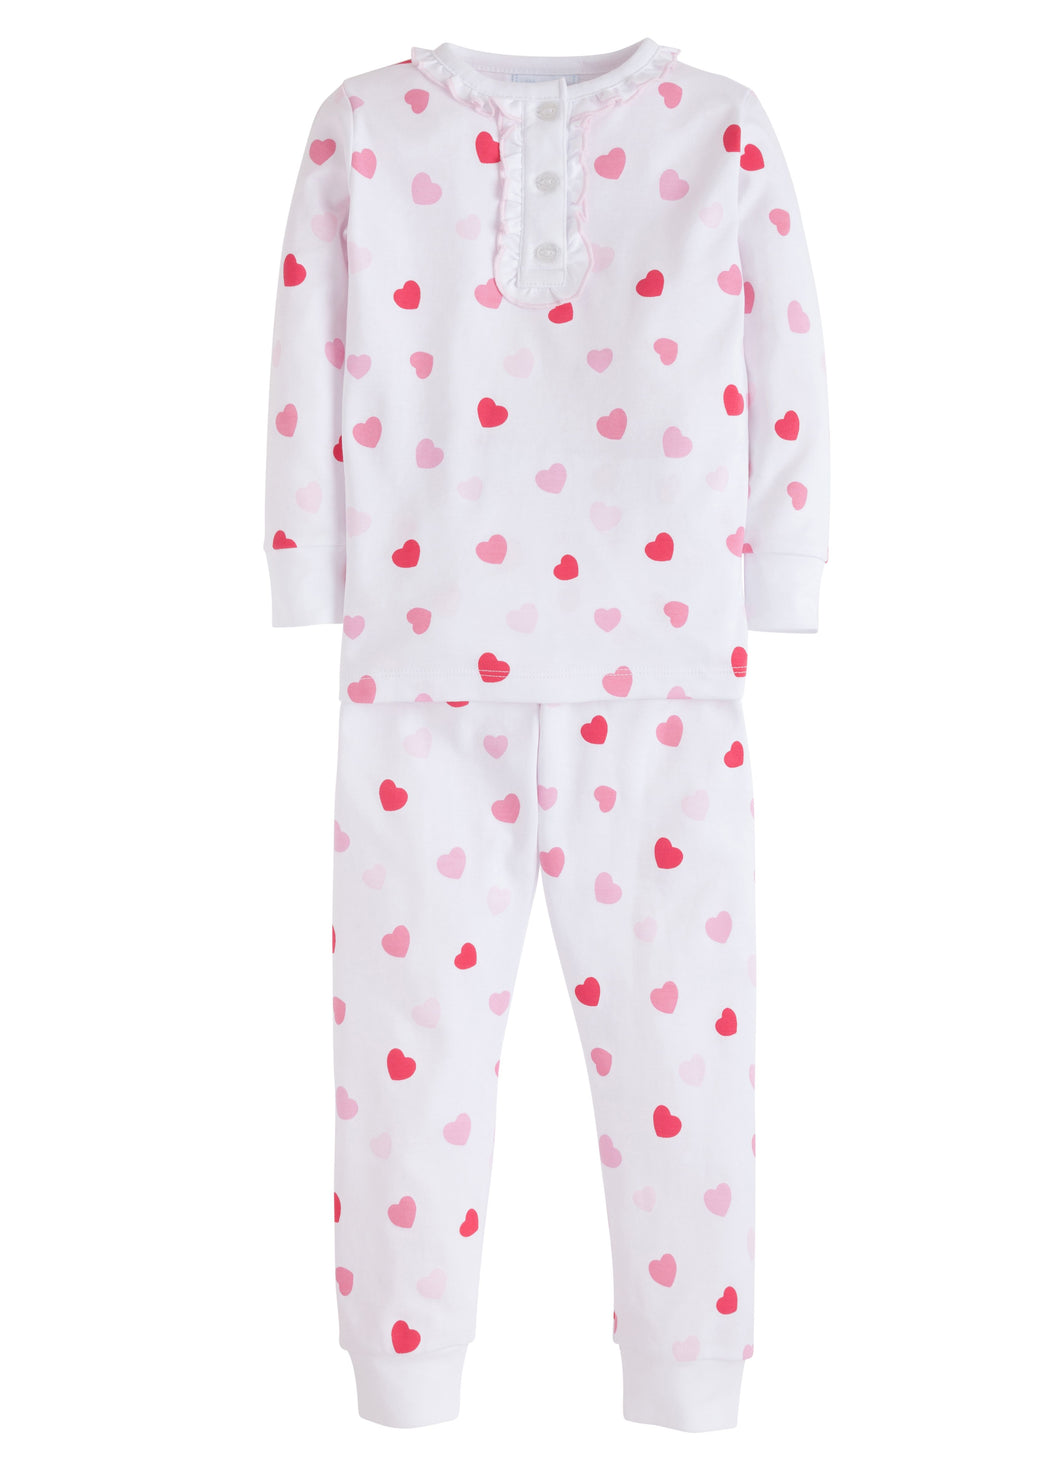 Hearts Printed Pajamas